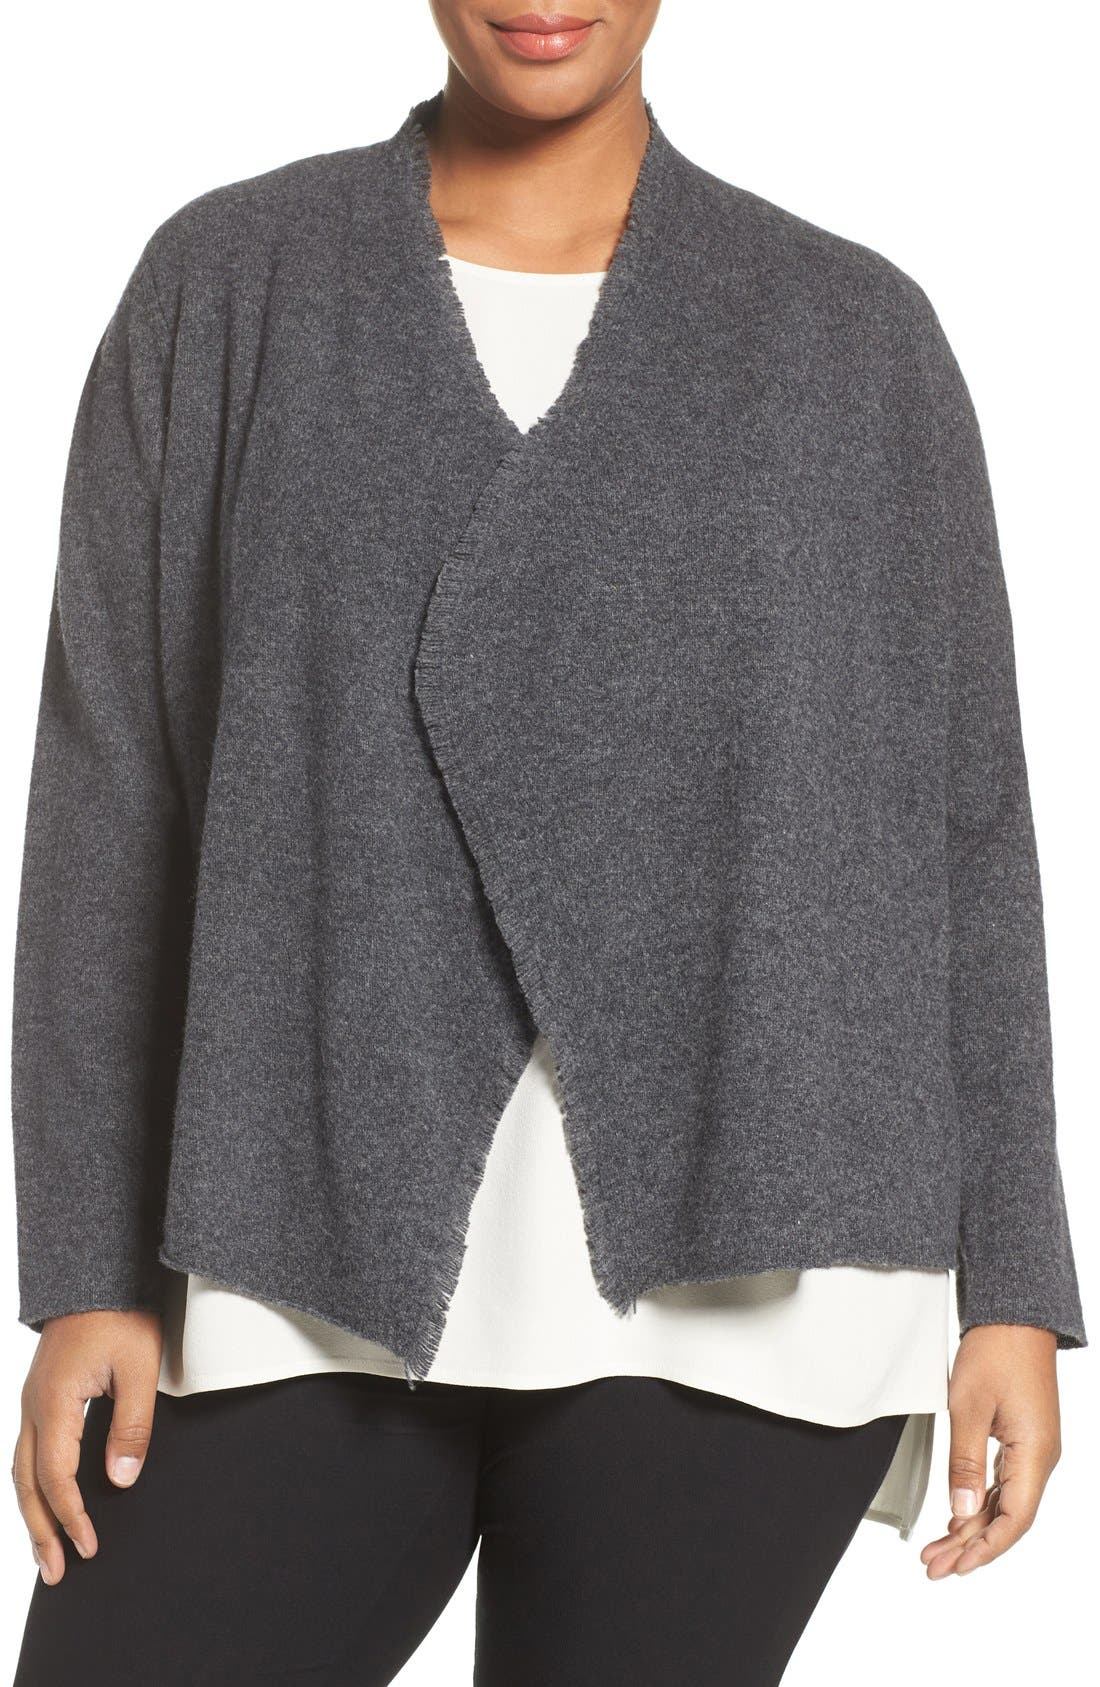 Main Image - Eileen Fisher Felted Merino Sweater Jacket (Plus Size)